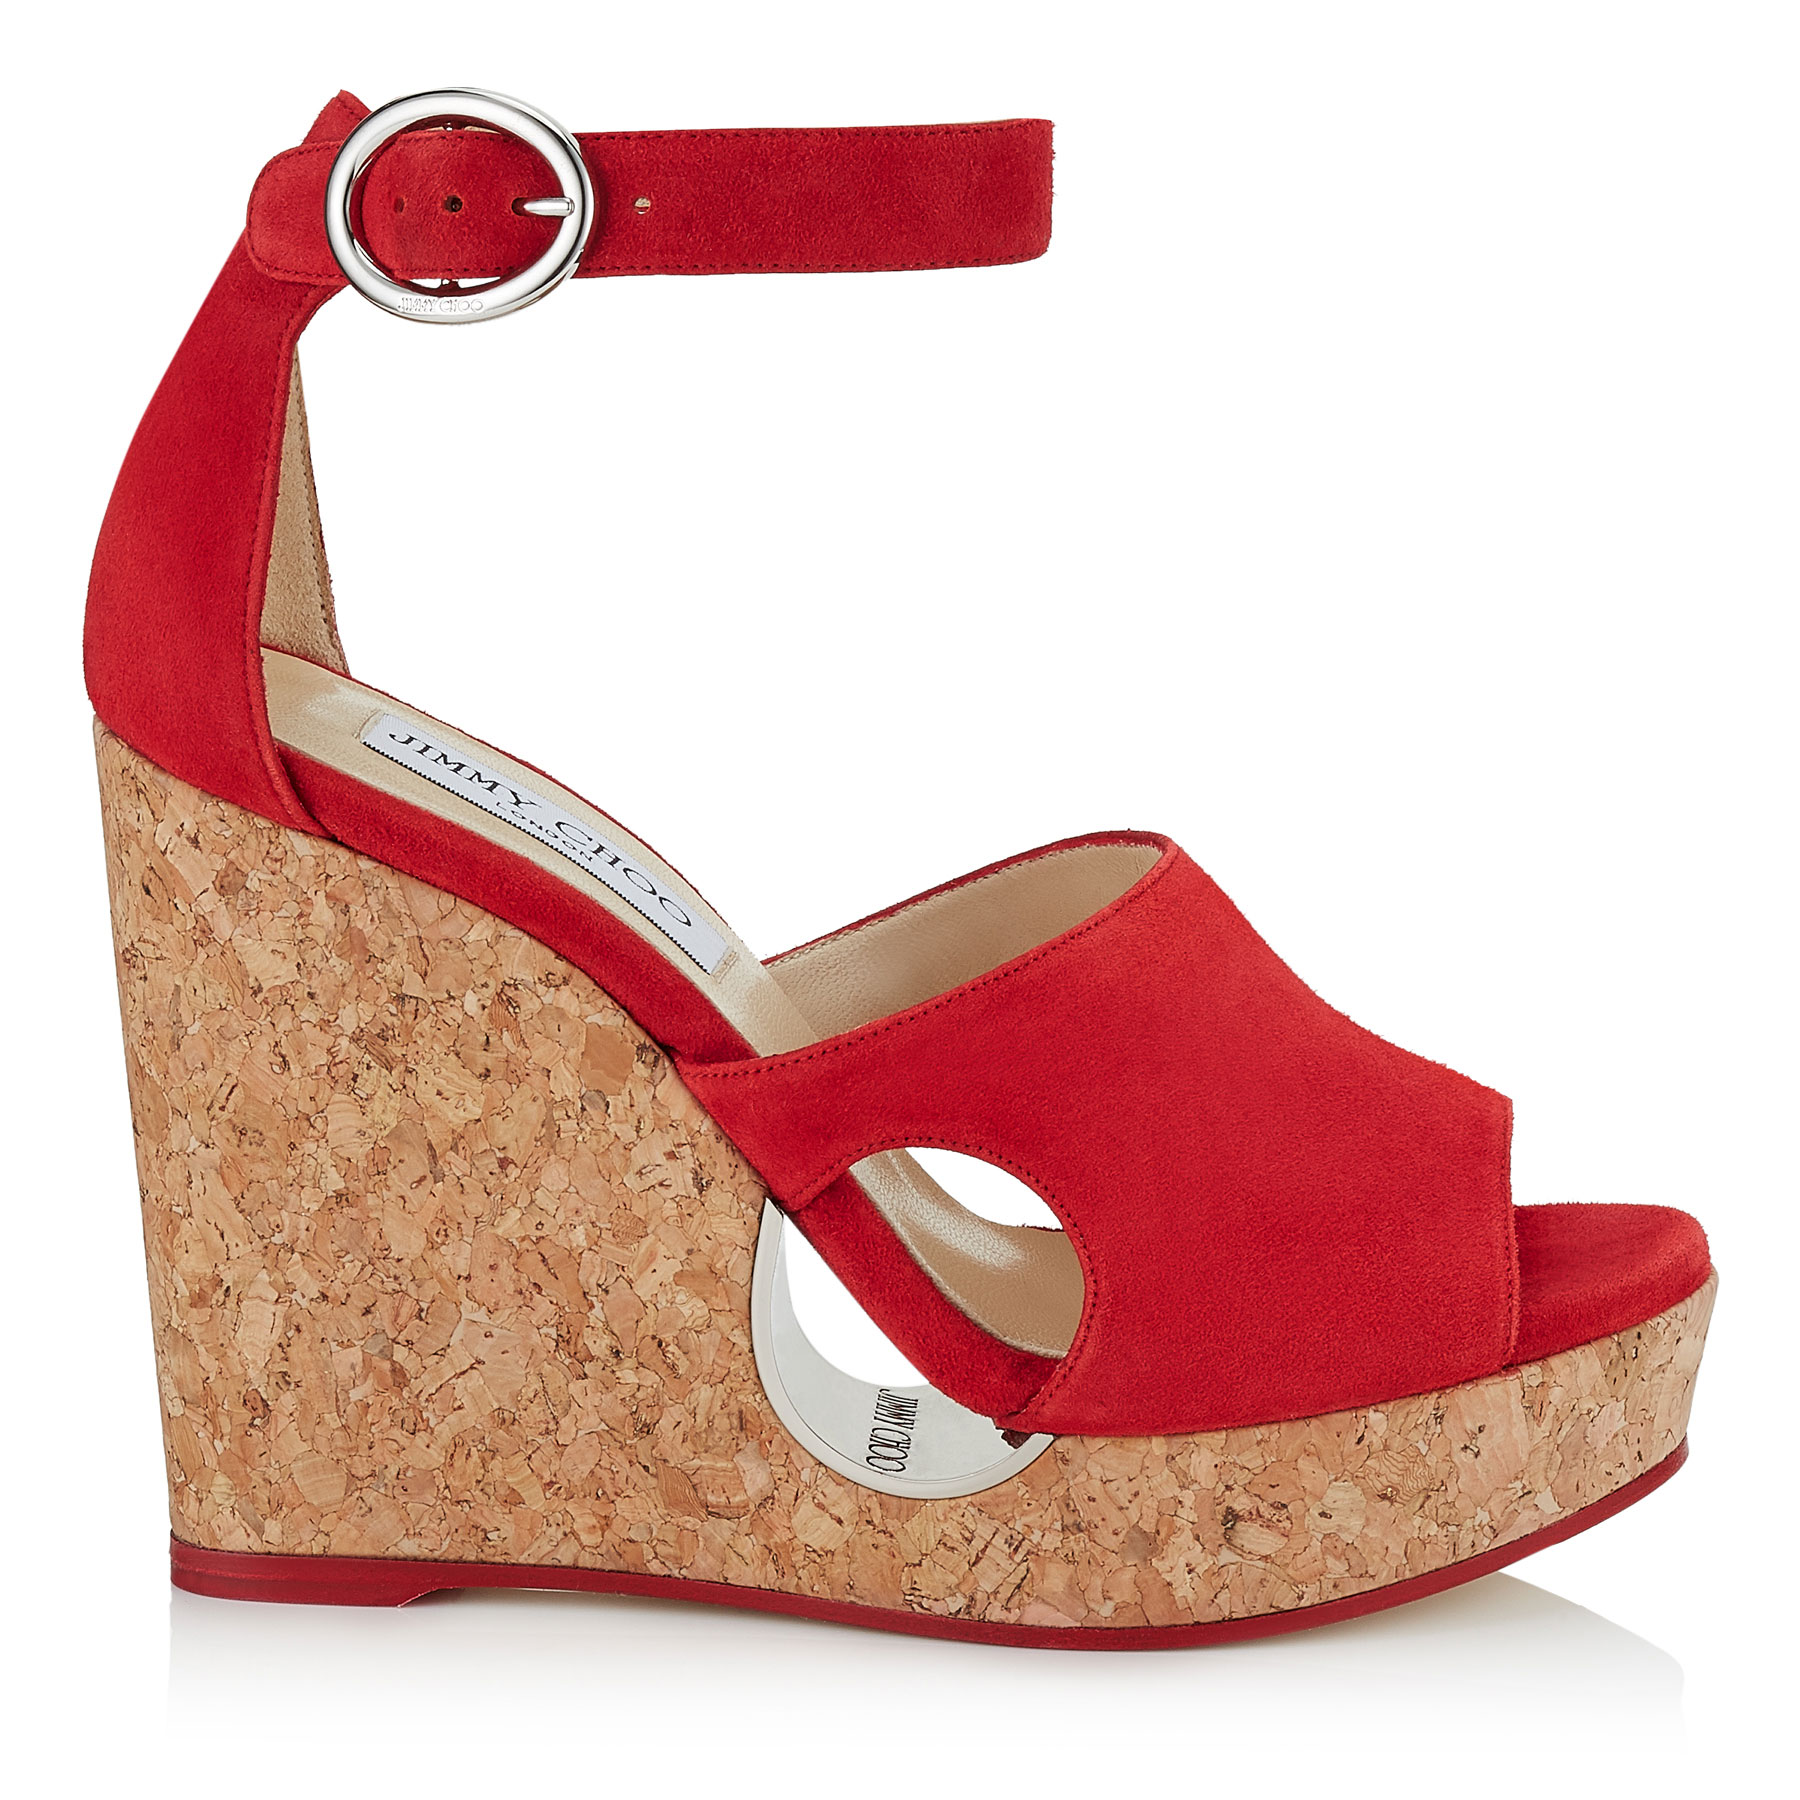 NEYO 120 Red Suede Cork Wedges with Cut-out